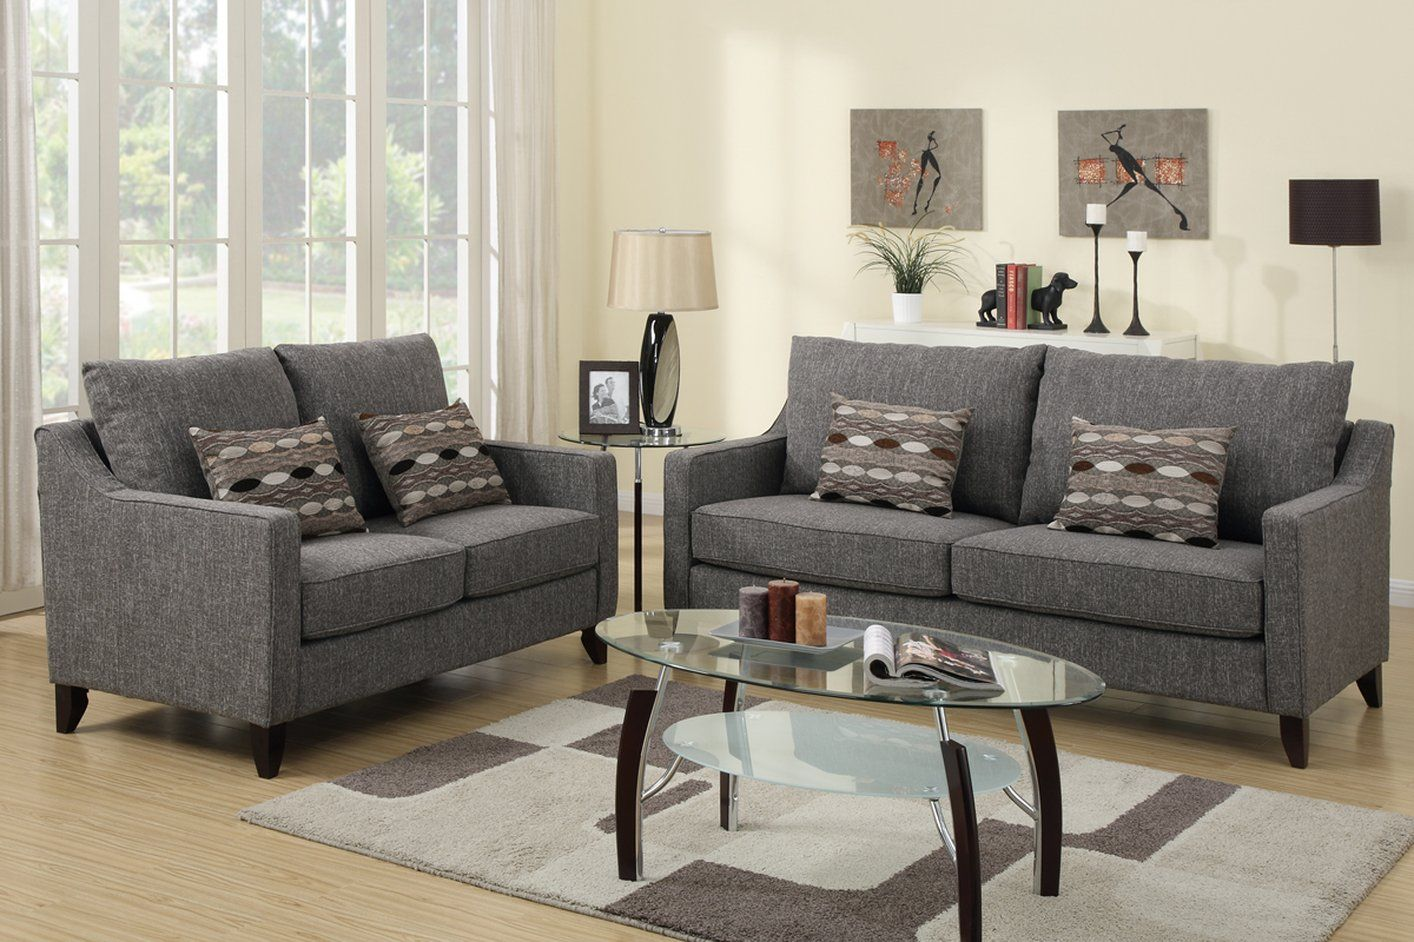 Superb The Benefits Of Having A Loveseat Sofa Sofa Design Ideas Ocoug Best Dining Table And Chair Ideas Images Ocougorg